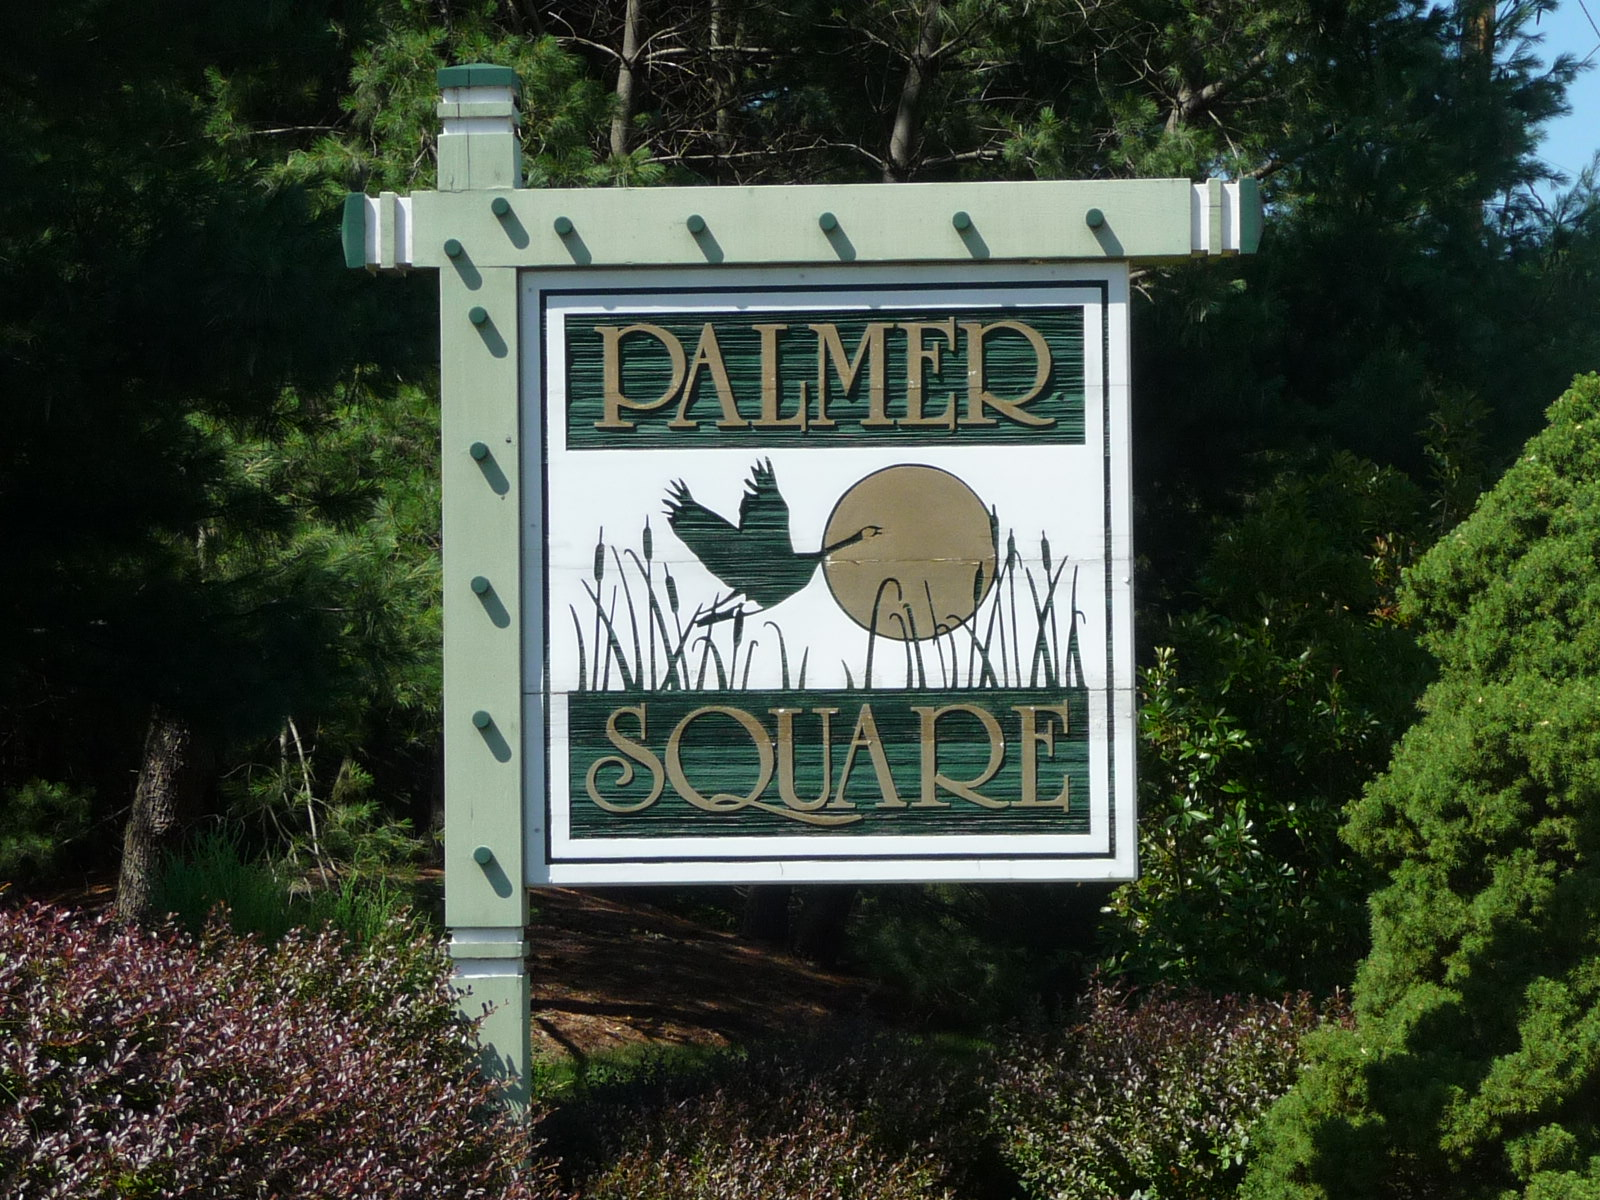 Palmer Square condominium is located off of Palmer Ave in Holmdel NJ